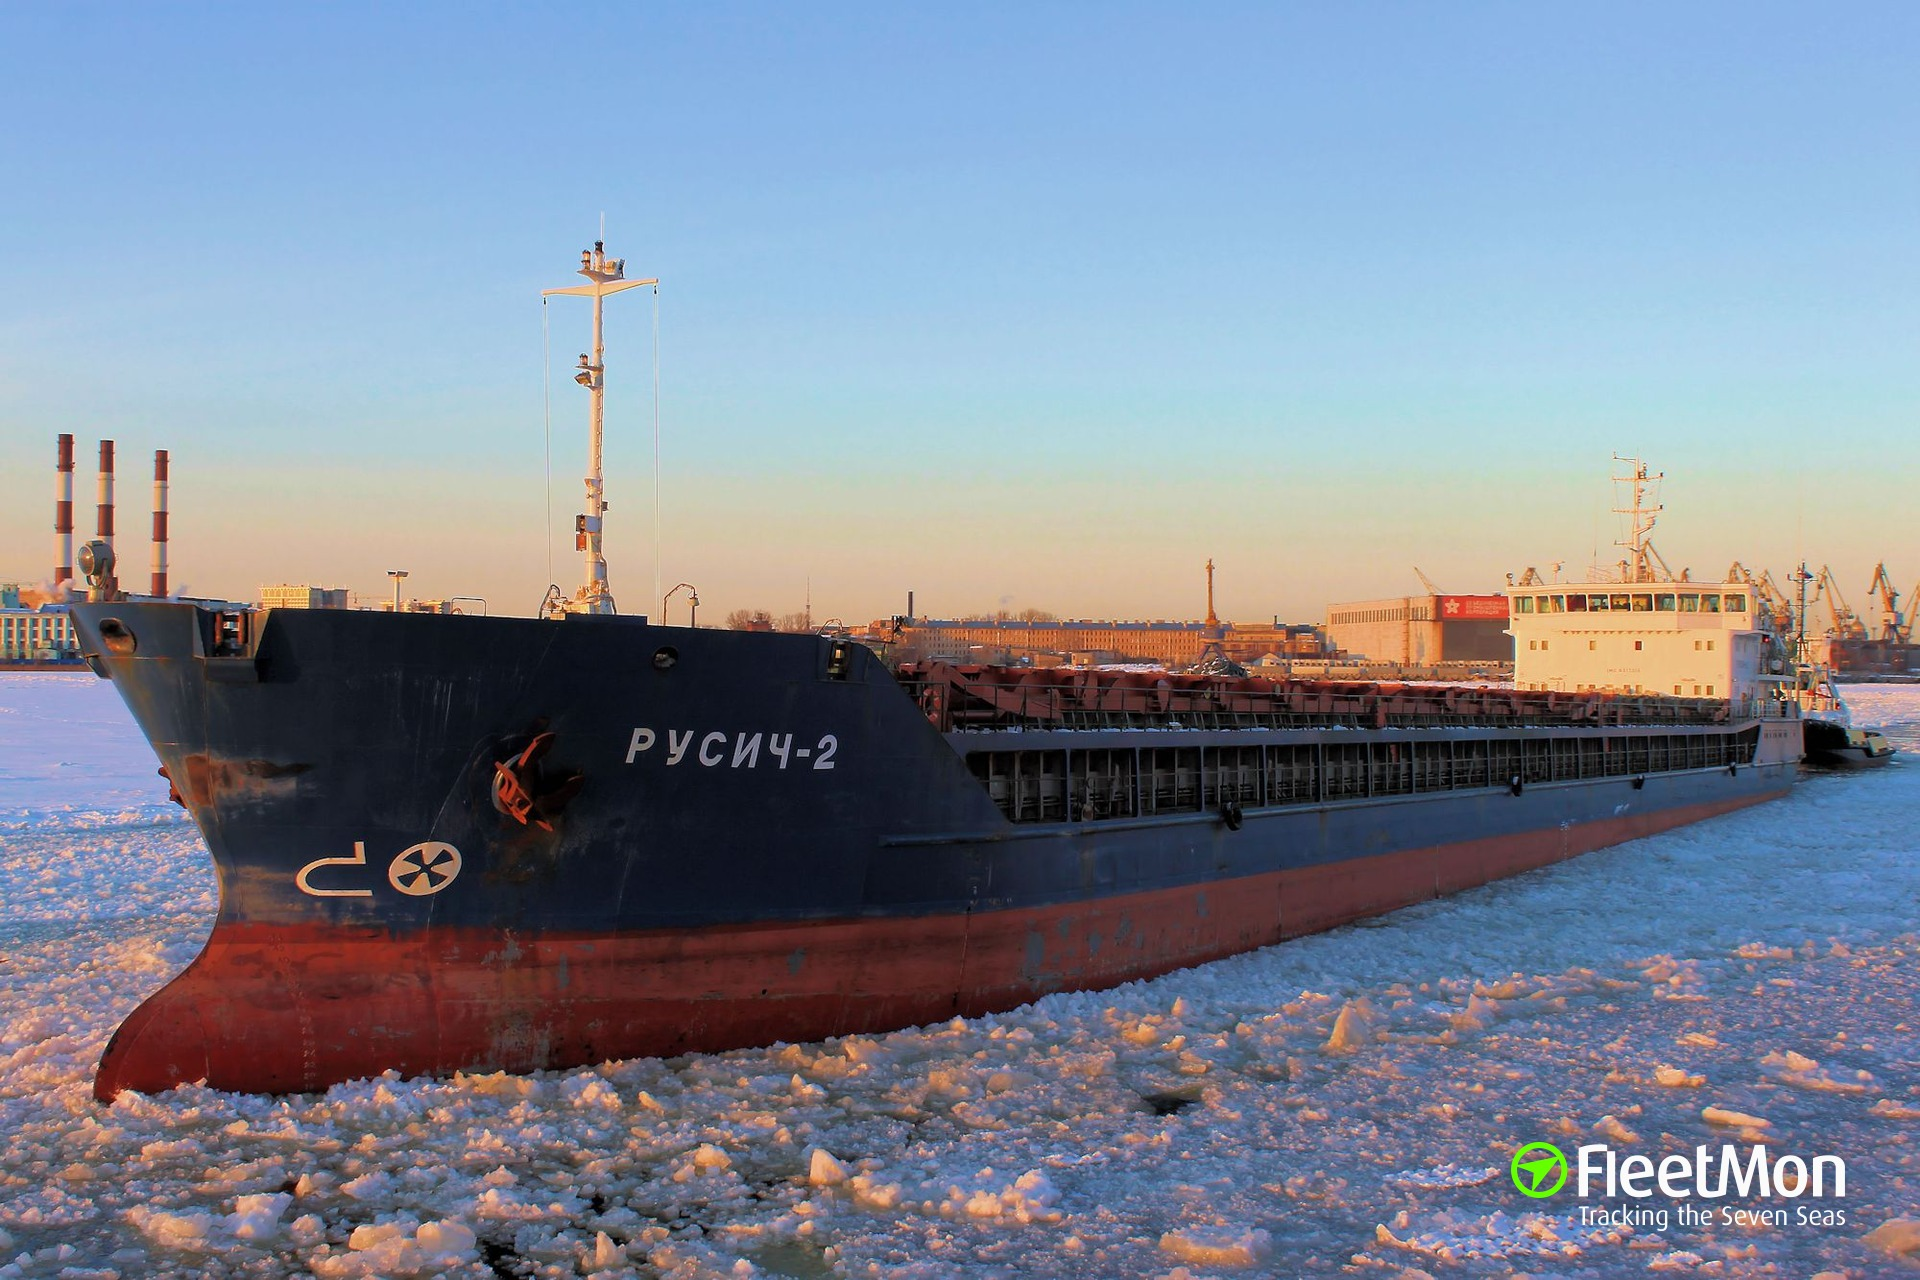 Disabled freighter allided with two other freighters, Azov